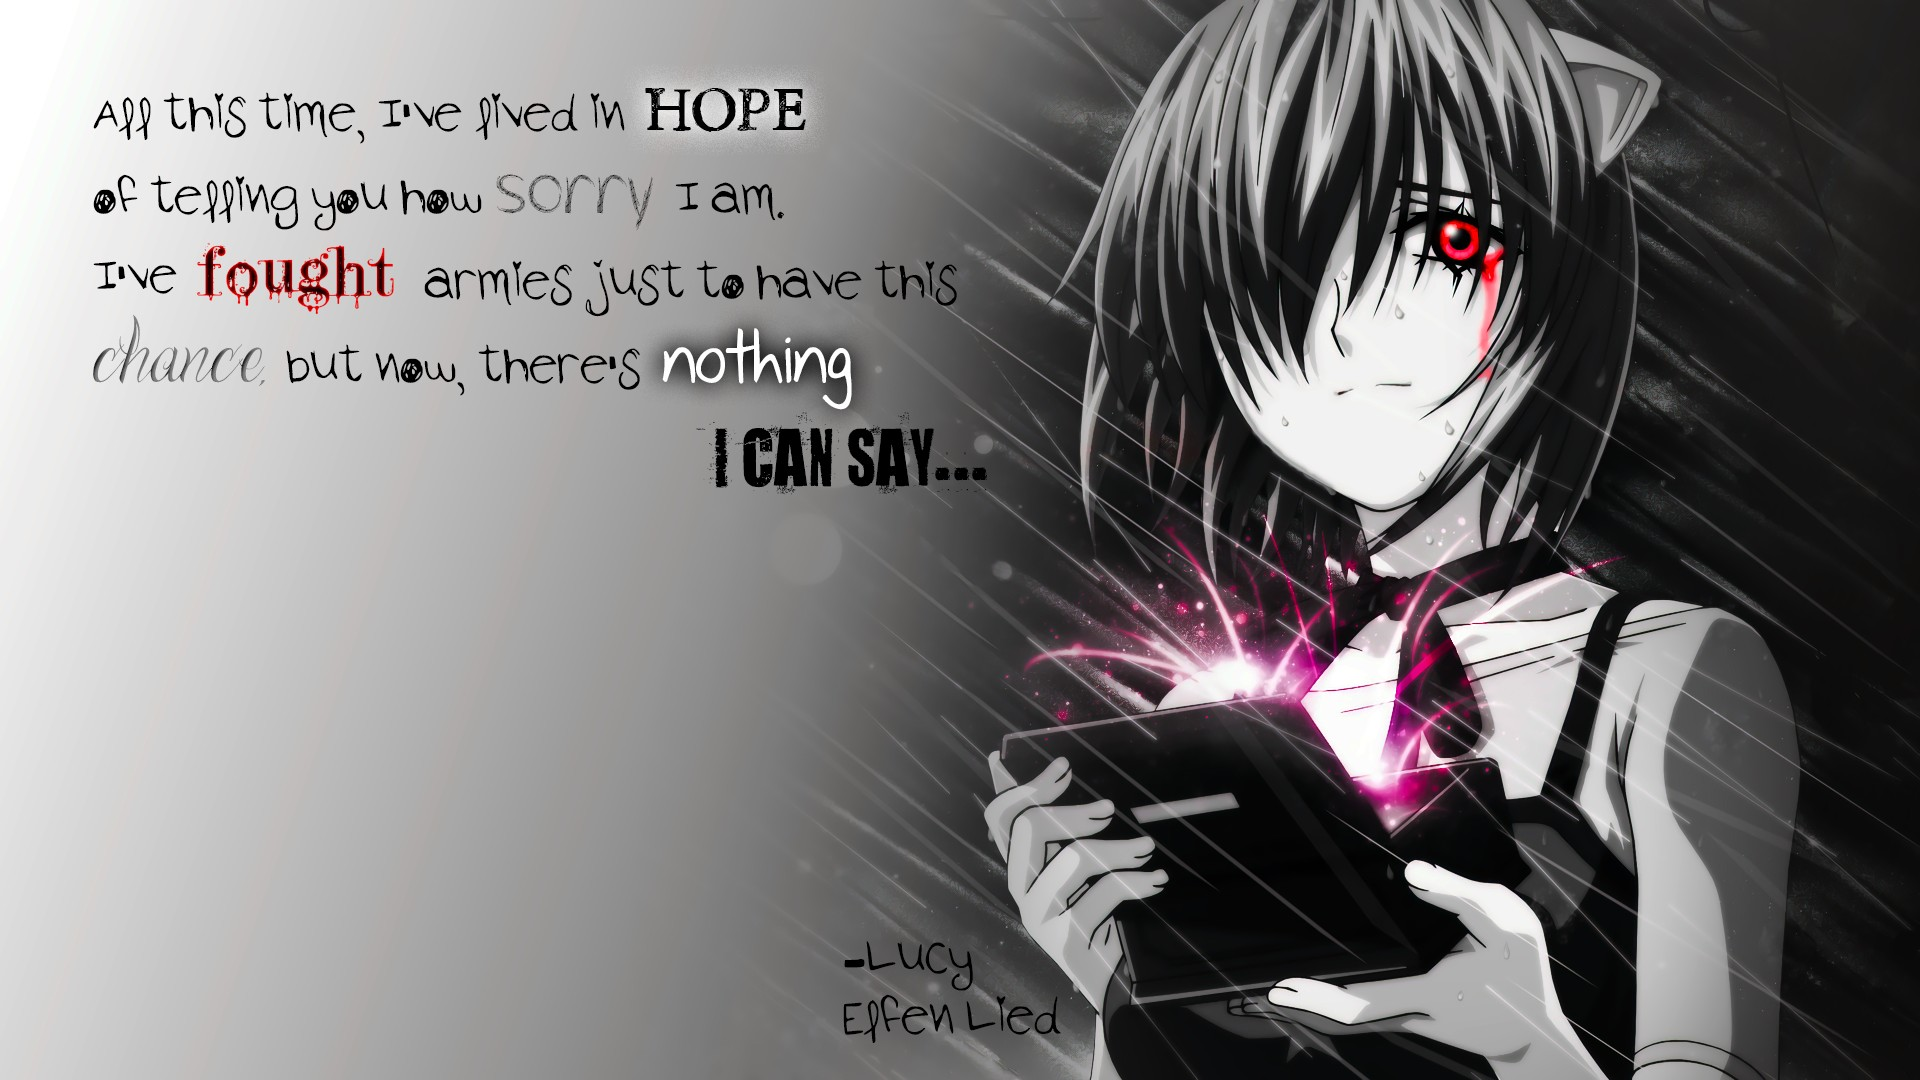 Wallpaper Of Sad Girl With Quotes Elfen Lied Quote Lucy Elfen Lied Wallpapers Hd